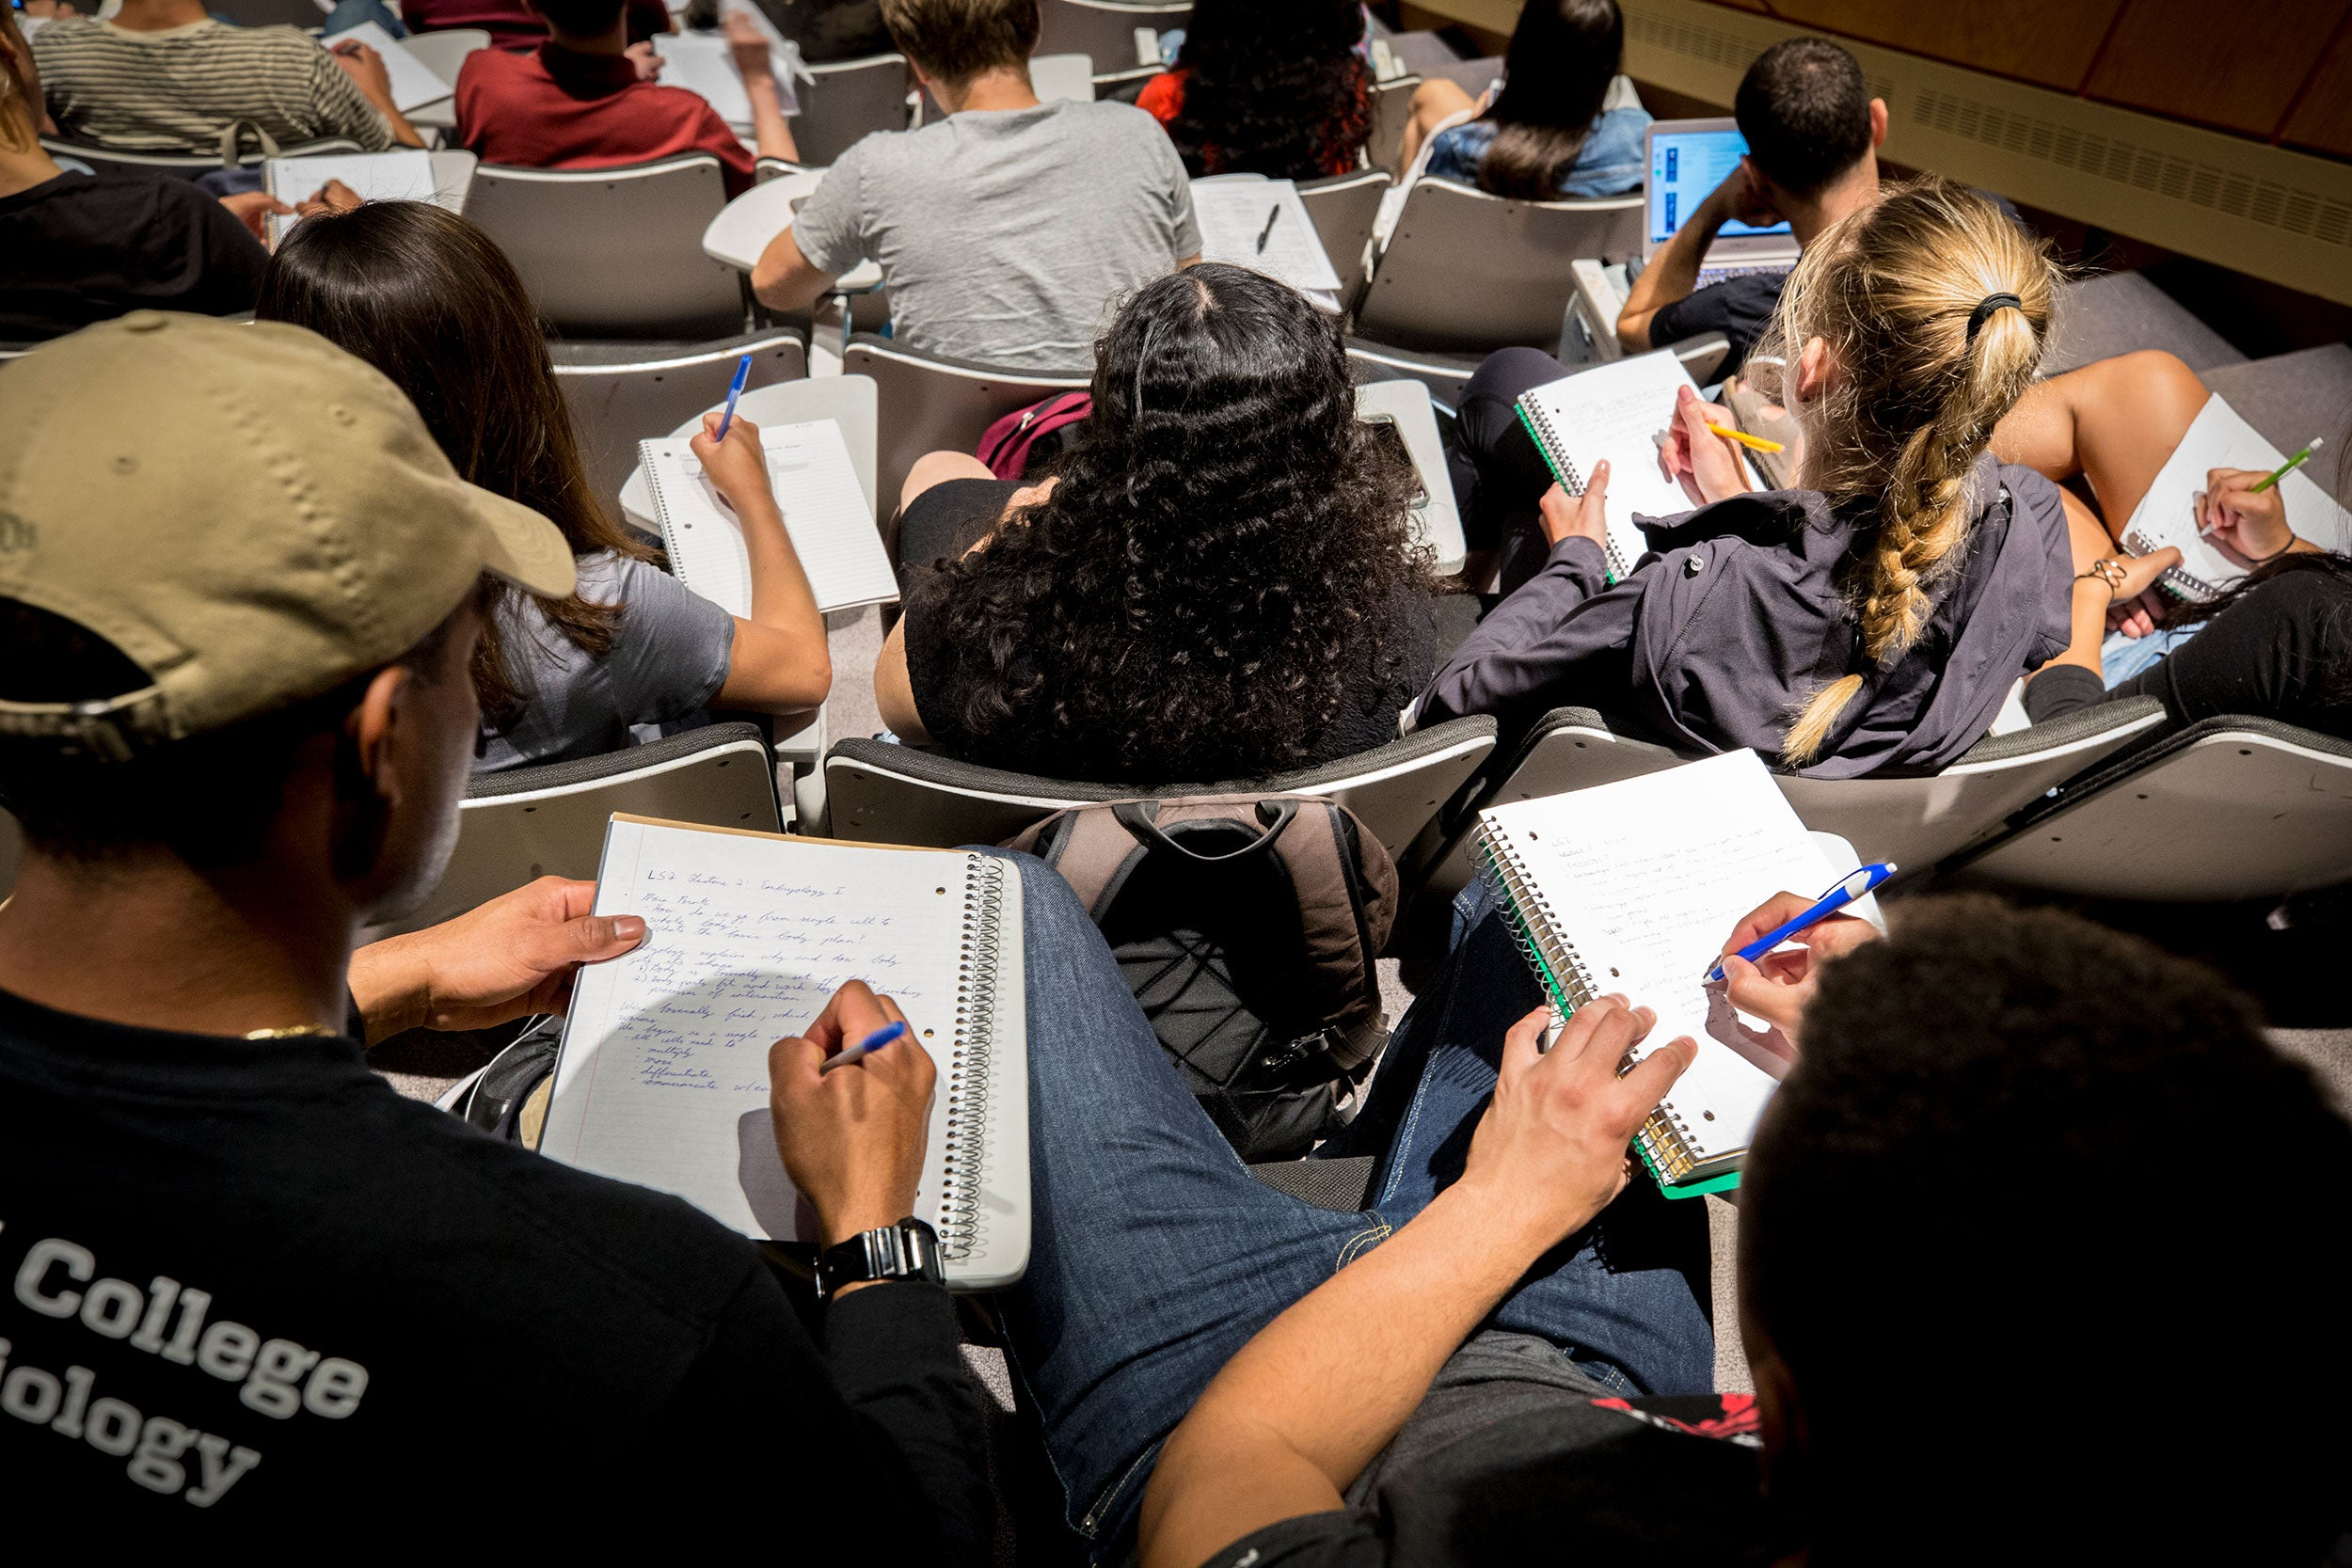 Students taking notes